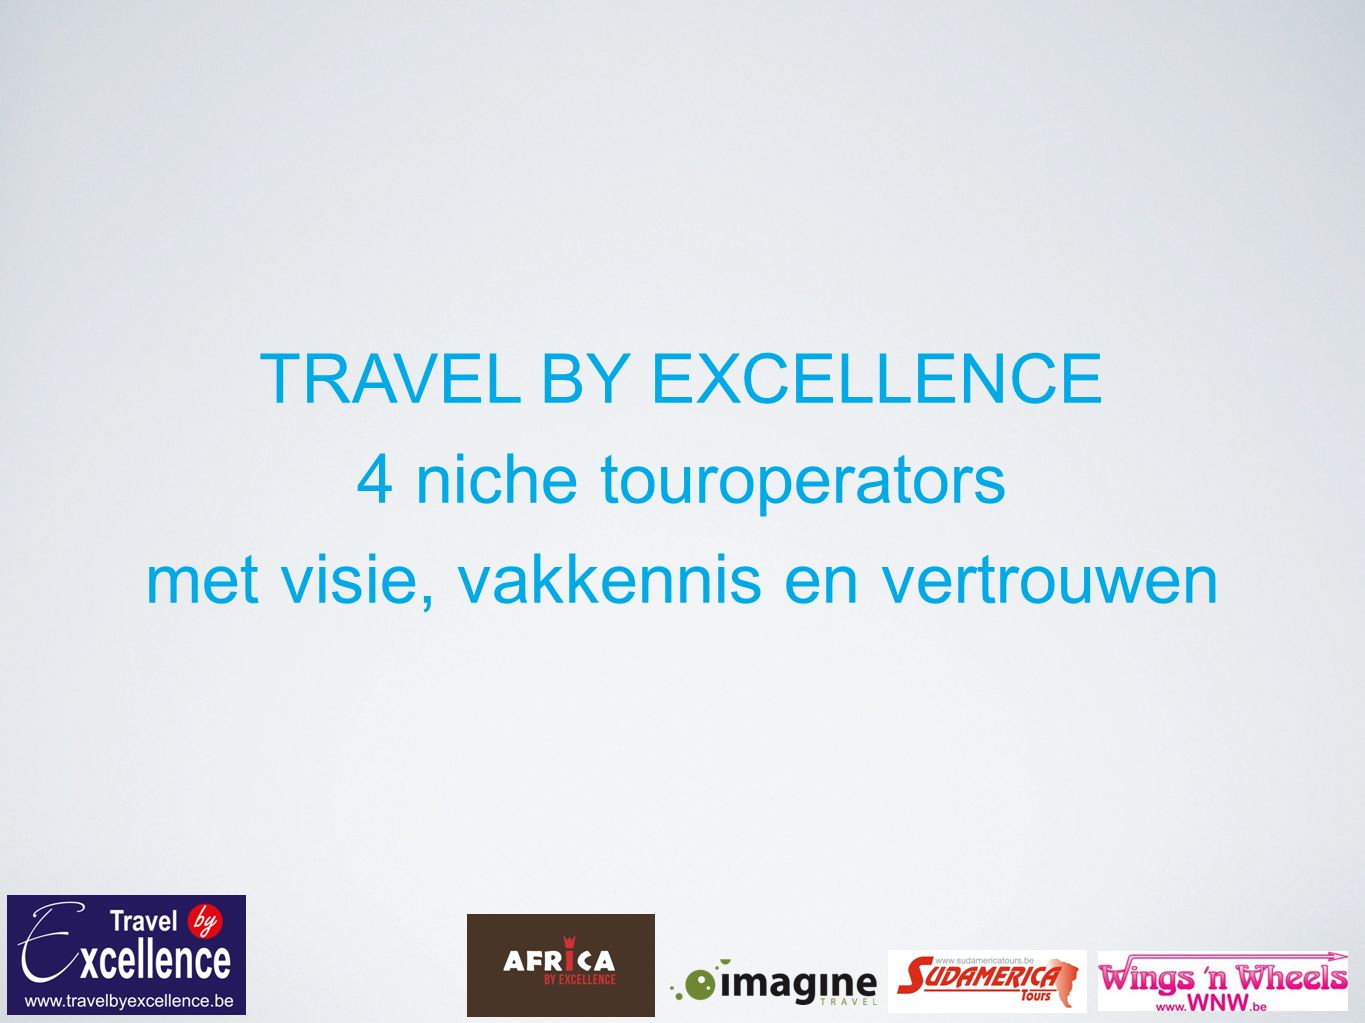 TRAVEL BY EXCELLENCE 4 niche touroperators met visie, vakkennis en vertrouwen